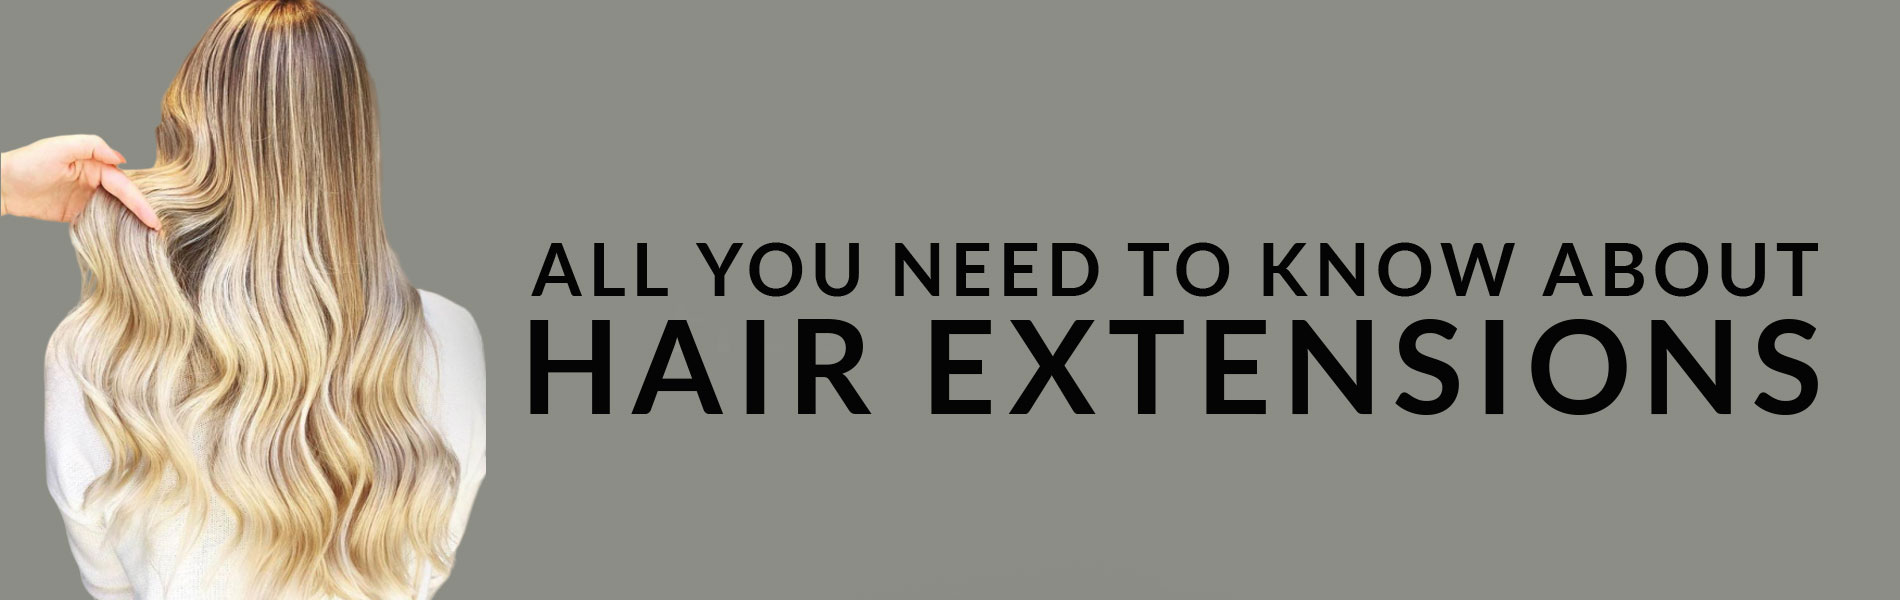 Hair Extensions banner